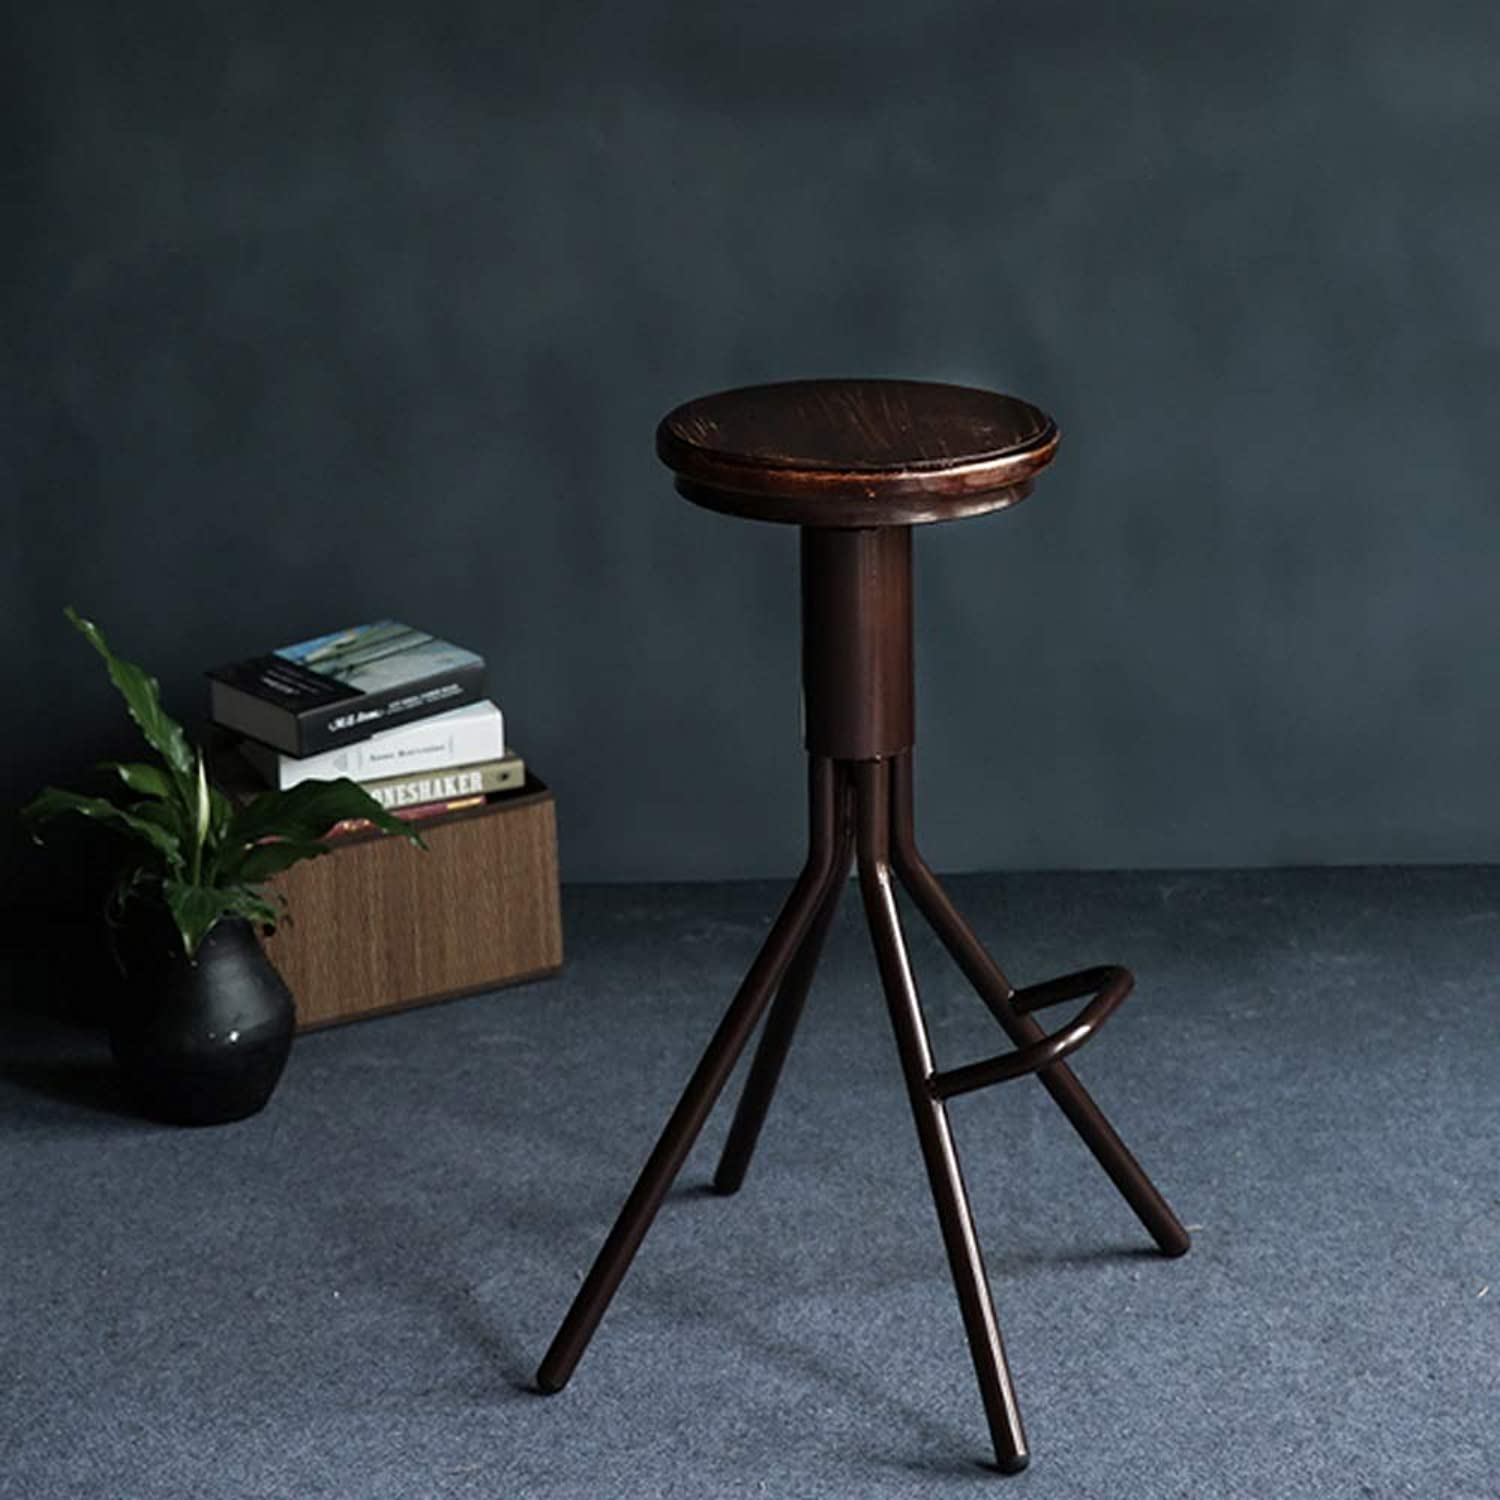 Retro Industry bar Chair Metal bar Stool high Stool Solid Wood Cushion Height Adjustable 27-35 inches in Height Suitable for Coffee Shop Living Room Club SUGEWANJBD (color   Brown)